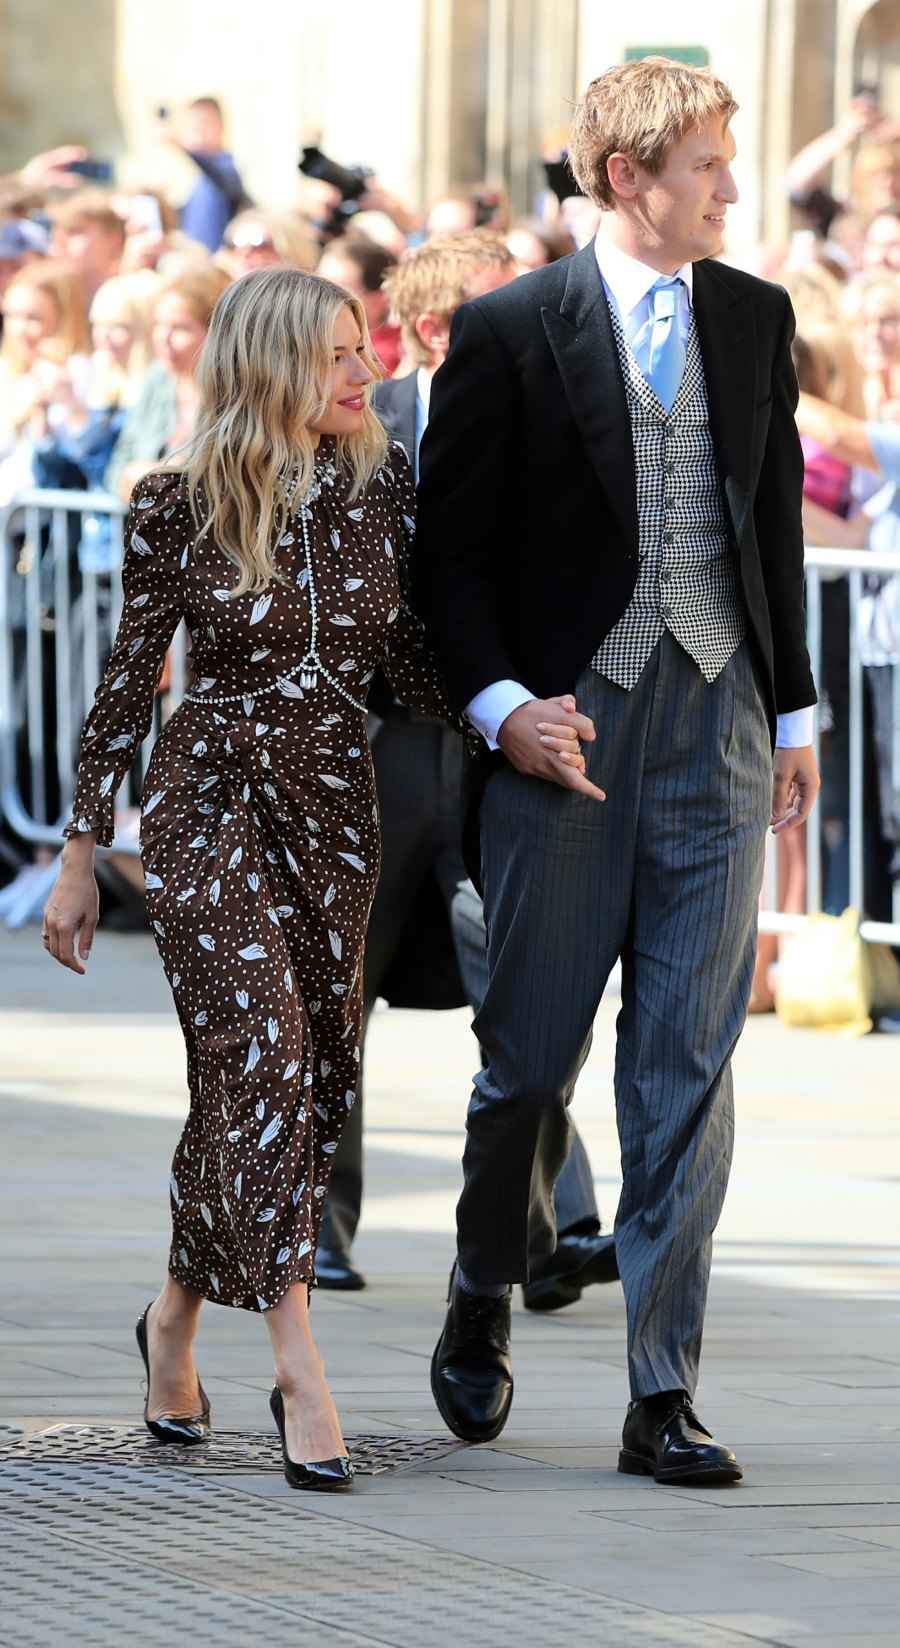 Sienna Miller, Lucas Zwirner Katy Perry, Orlando Bloom, Princess Beatrice and More Celebrity Guests Attend Ellie Goulding's Wedding